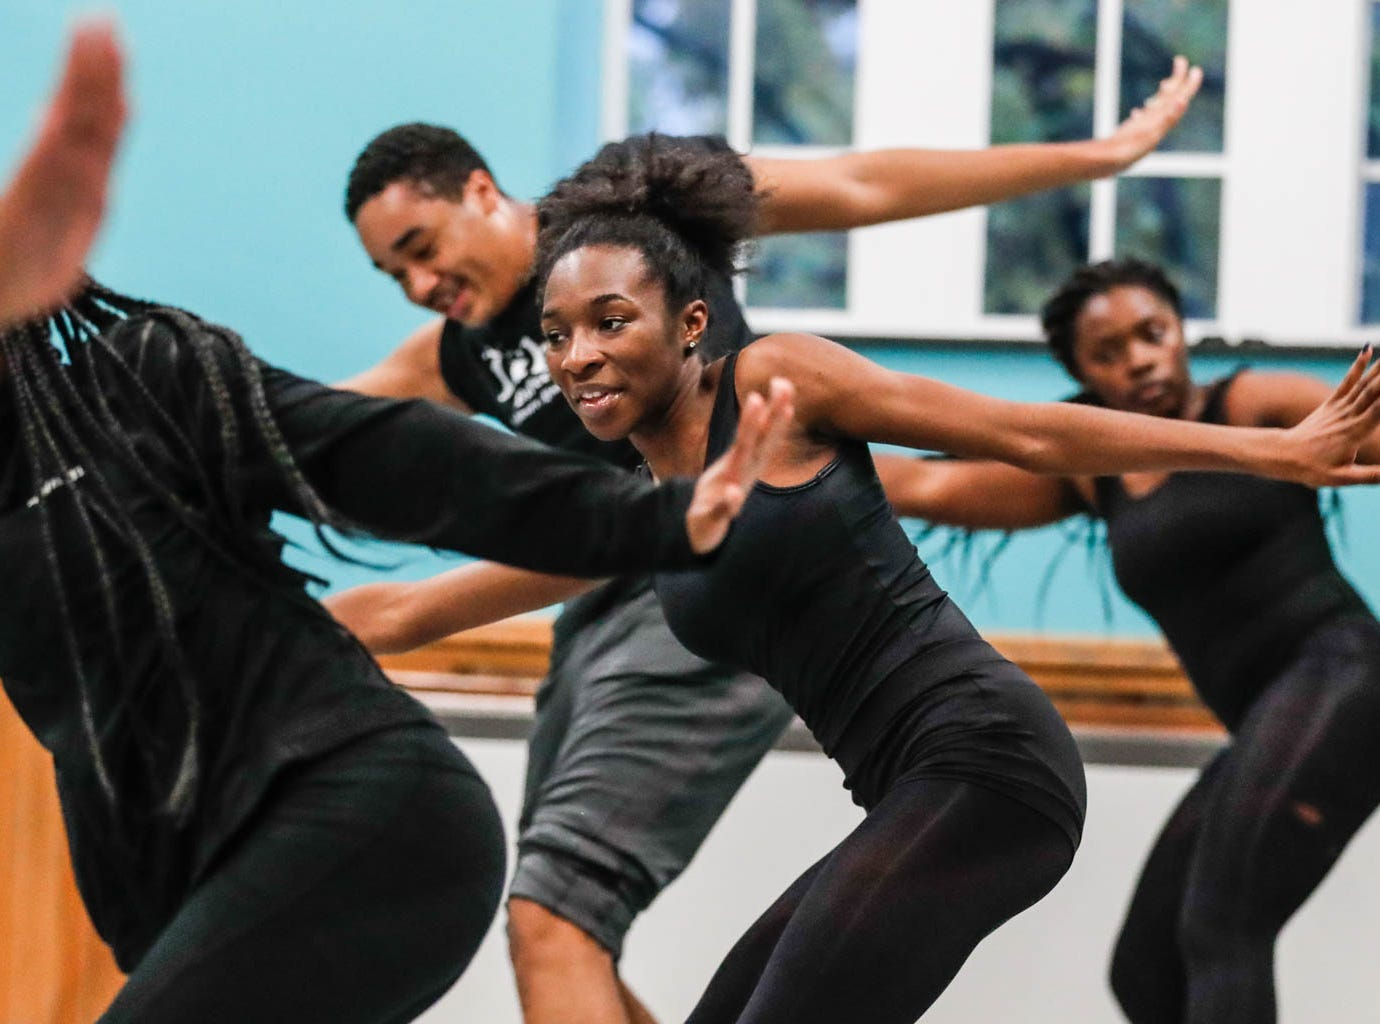 Students practice a dance routine during an Iibada Dance Company class at Broadway United Methodist Church in Indianapolis on Wednesday, Oct. 31, 2018. The children's nonprofit dance studio teaches cultural enrichment, discipline, and positive self-esteem through the art of dance.